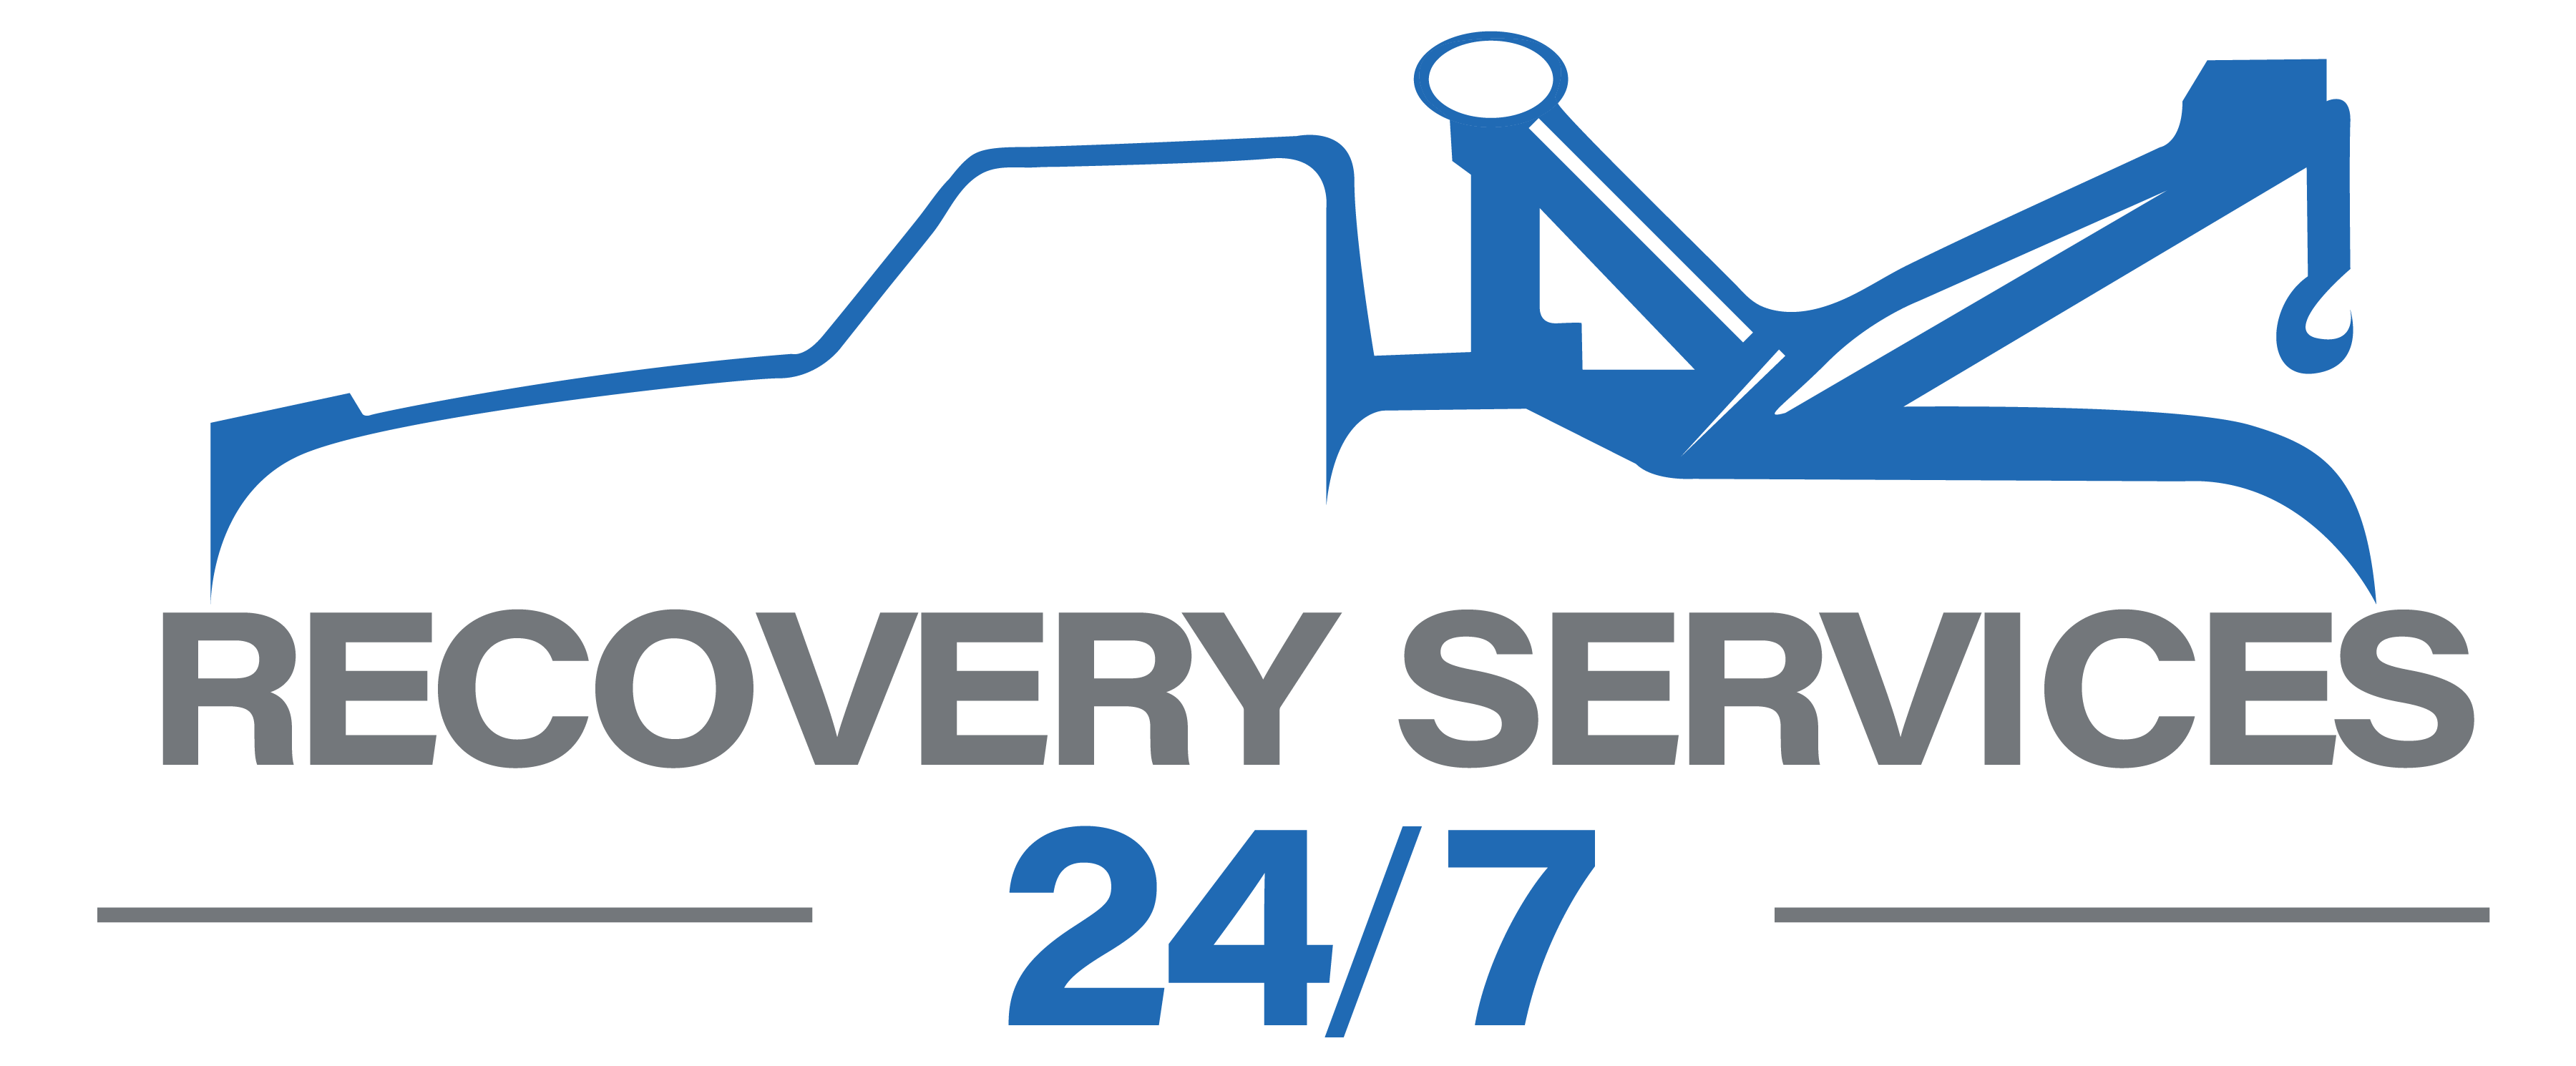 Recovery Services 24/7